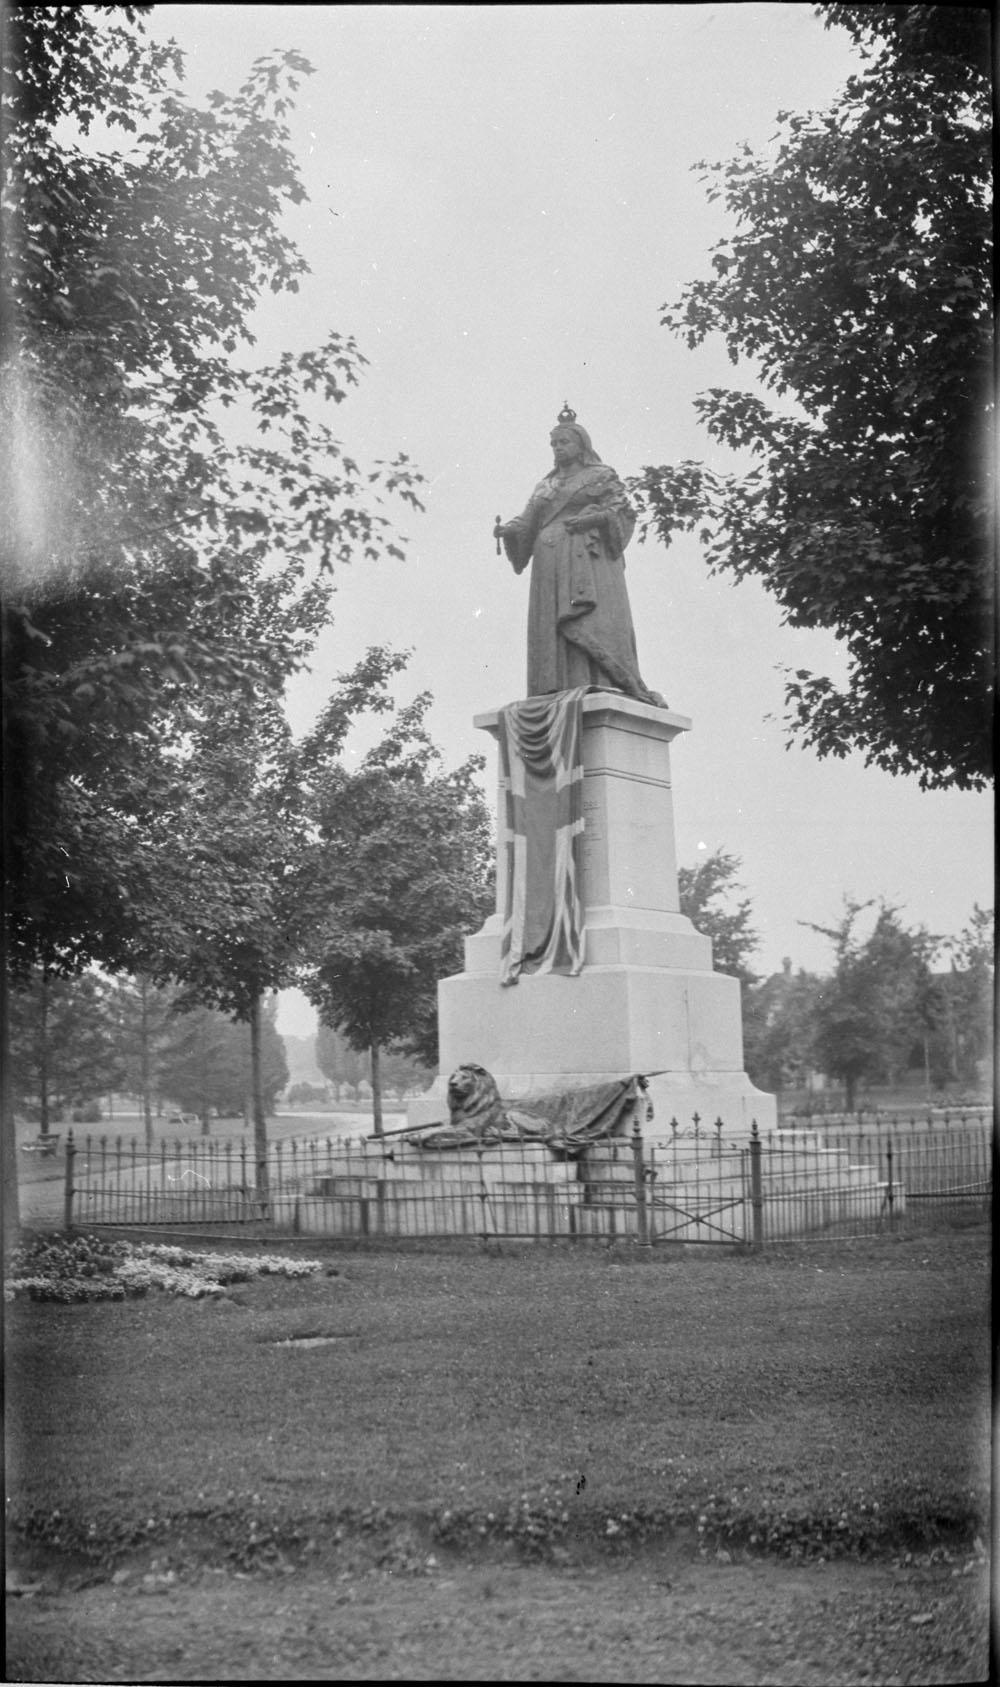 The Queen Victoria Monument in the logically named Victoria Park in Kitchener, Ontario.  Photo: John Boyd.  Library and Archives Canada, 1971-120 NPC